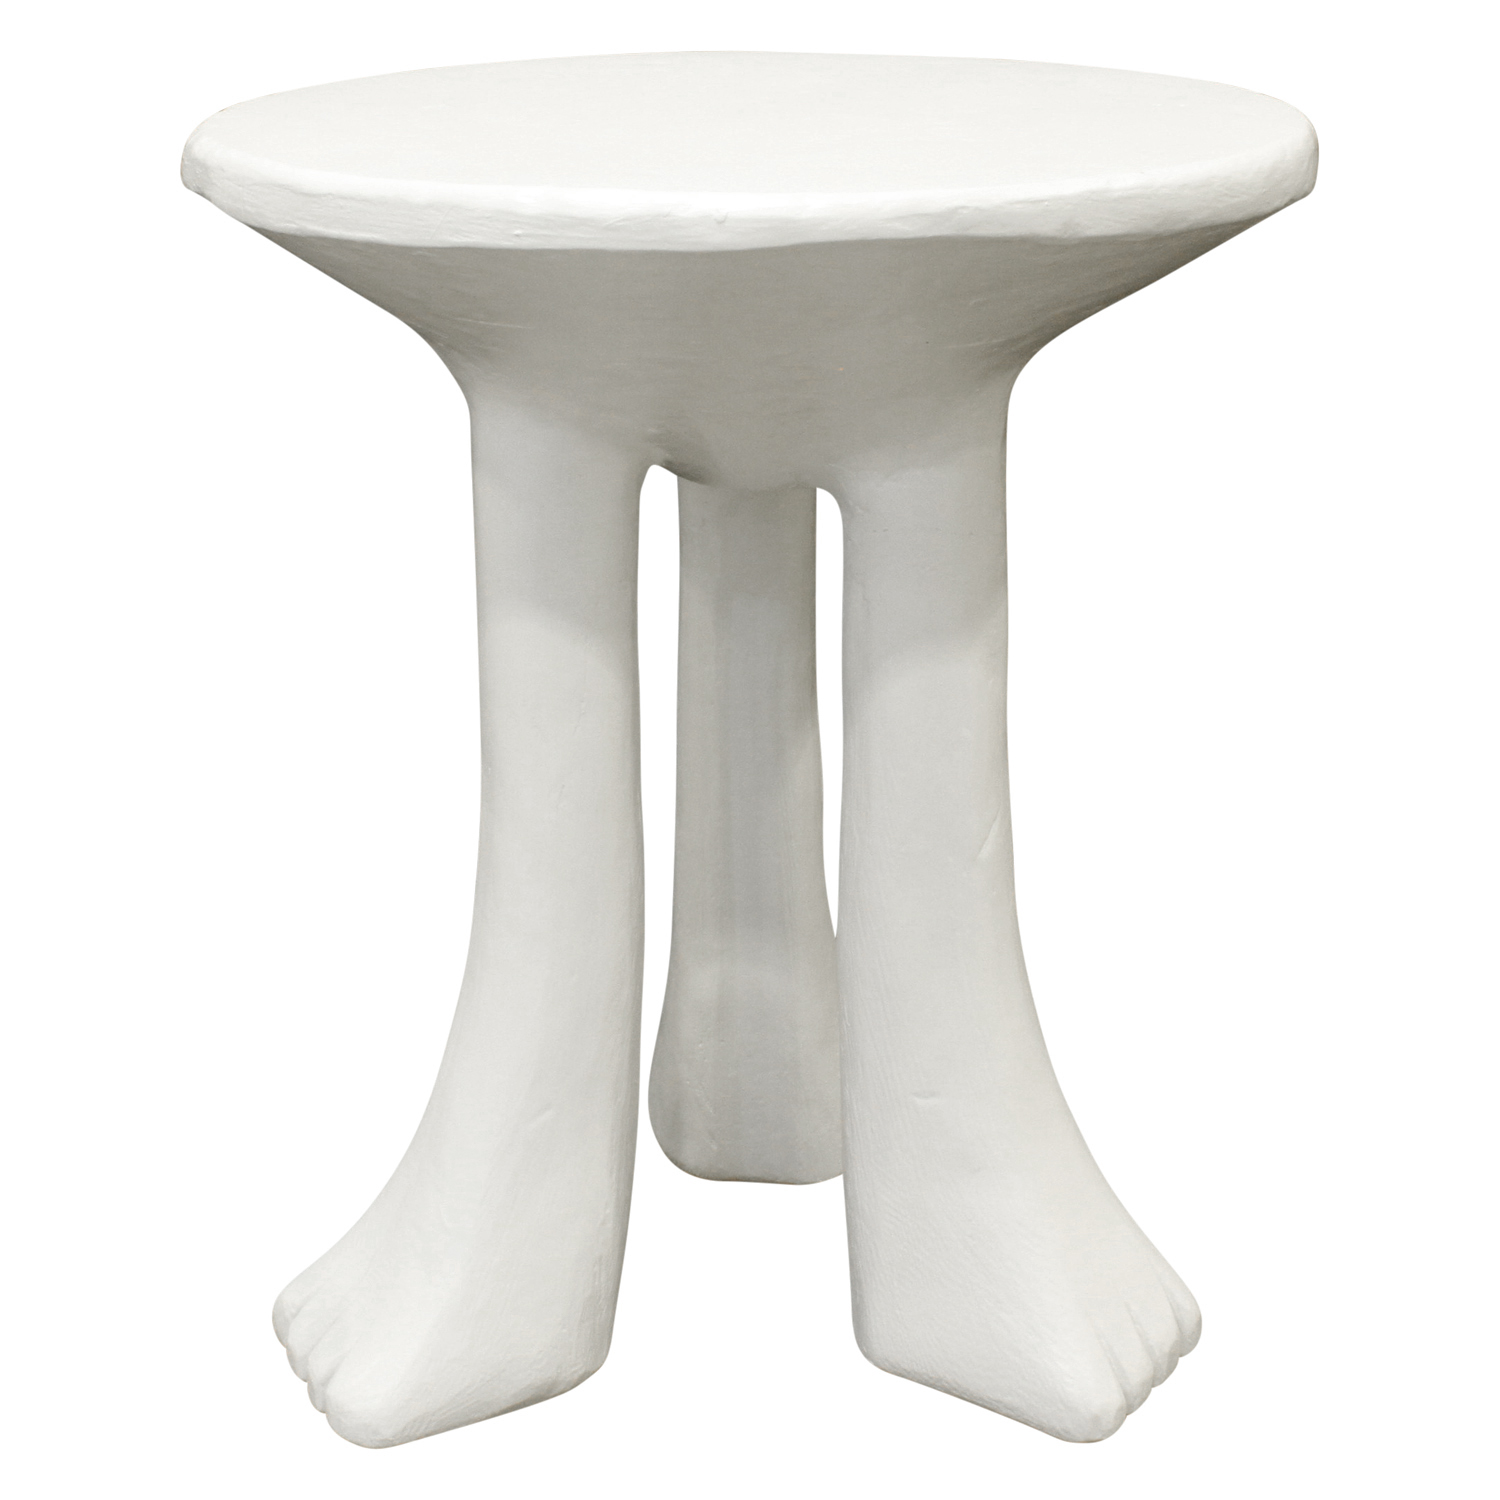 Dickinson 175 lrg African Table endtable195 main.jpg